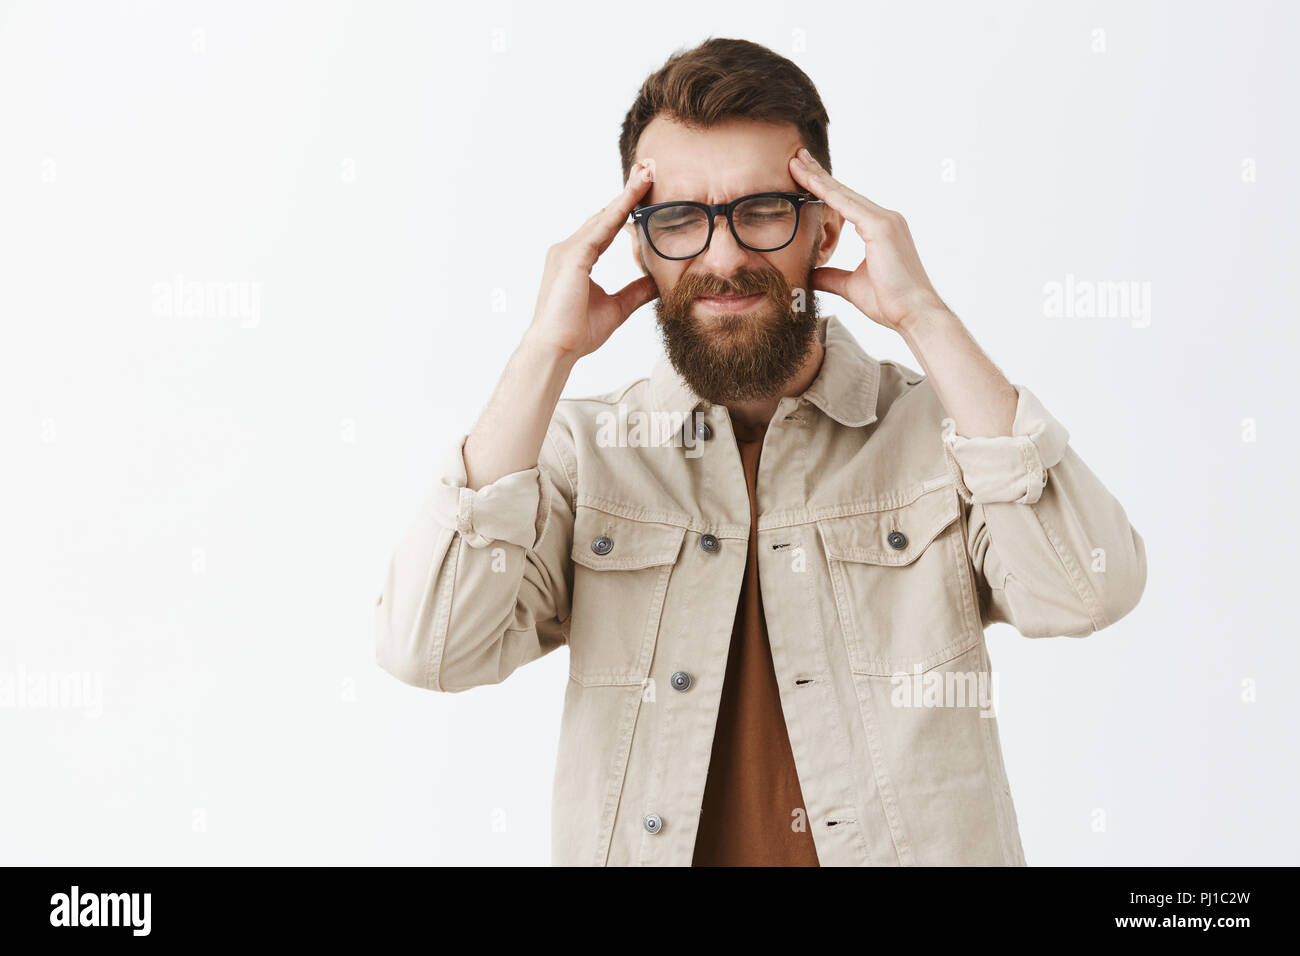 Man losing concentration feeling intense being workaholic grimacing from painful feeling in head holding hands on temples closing eyes and smirking suffering from migraine or headache over gray wall - Stock Image